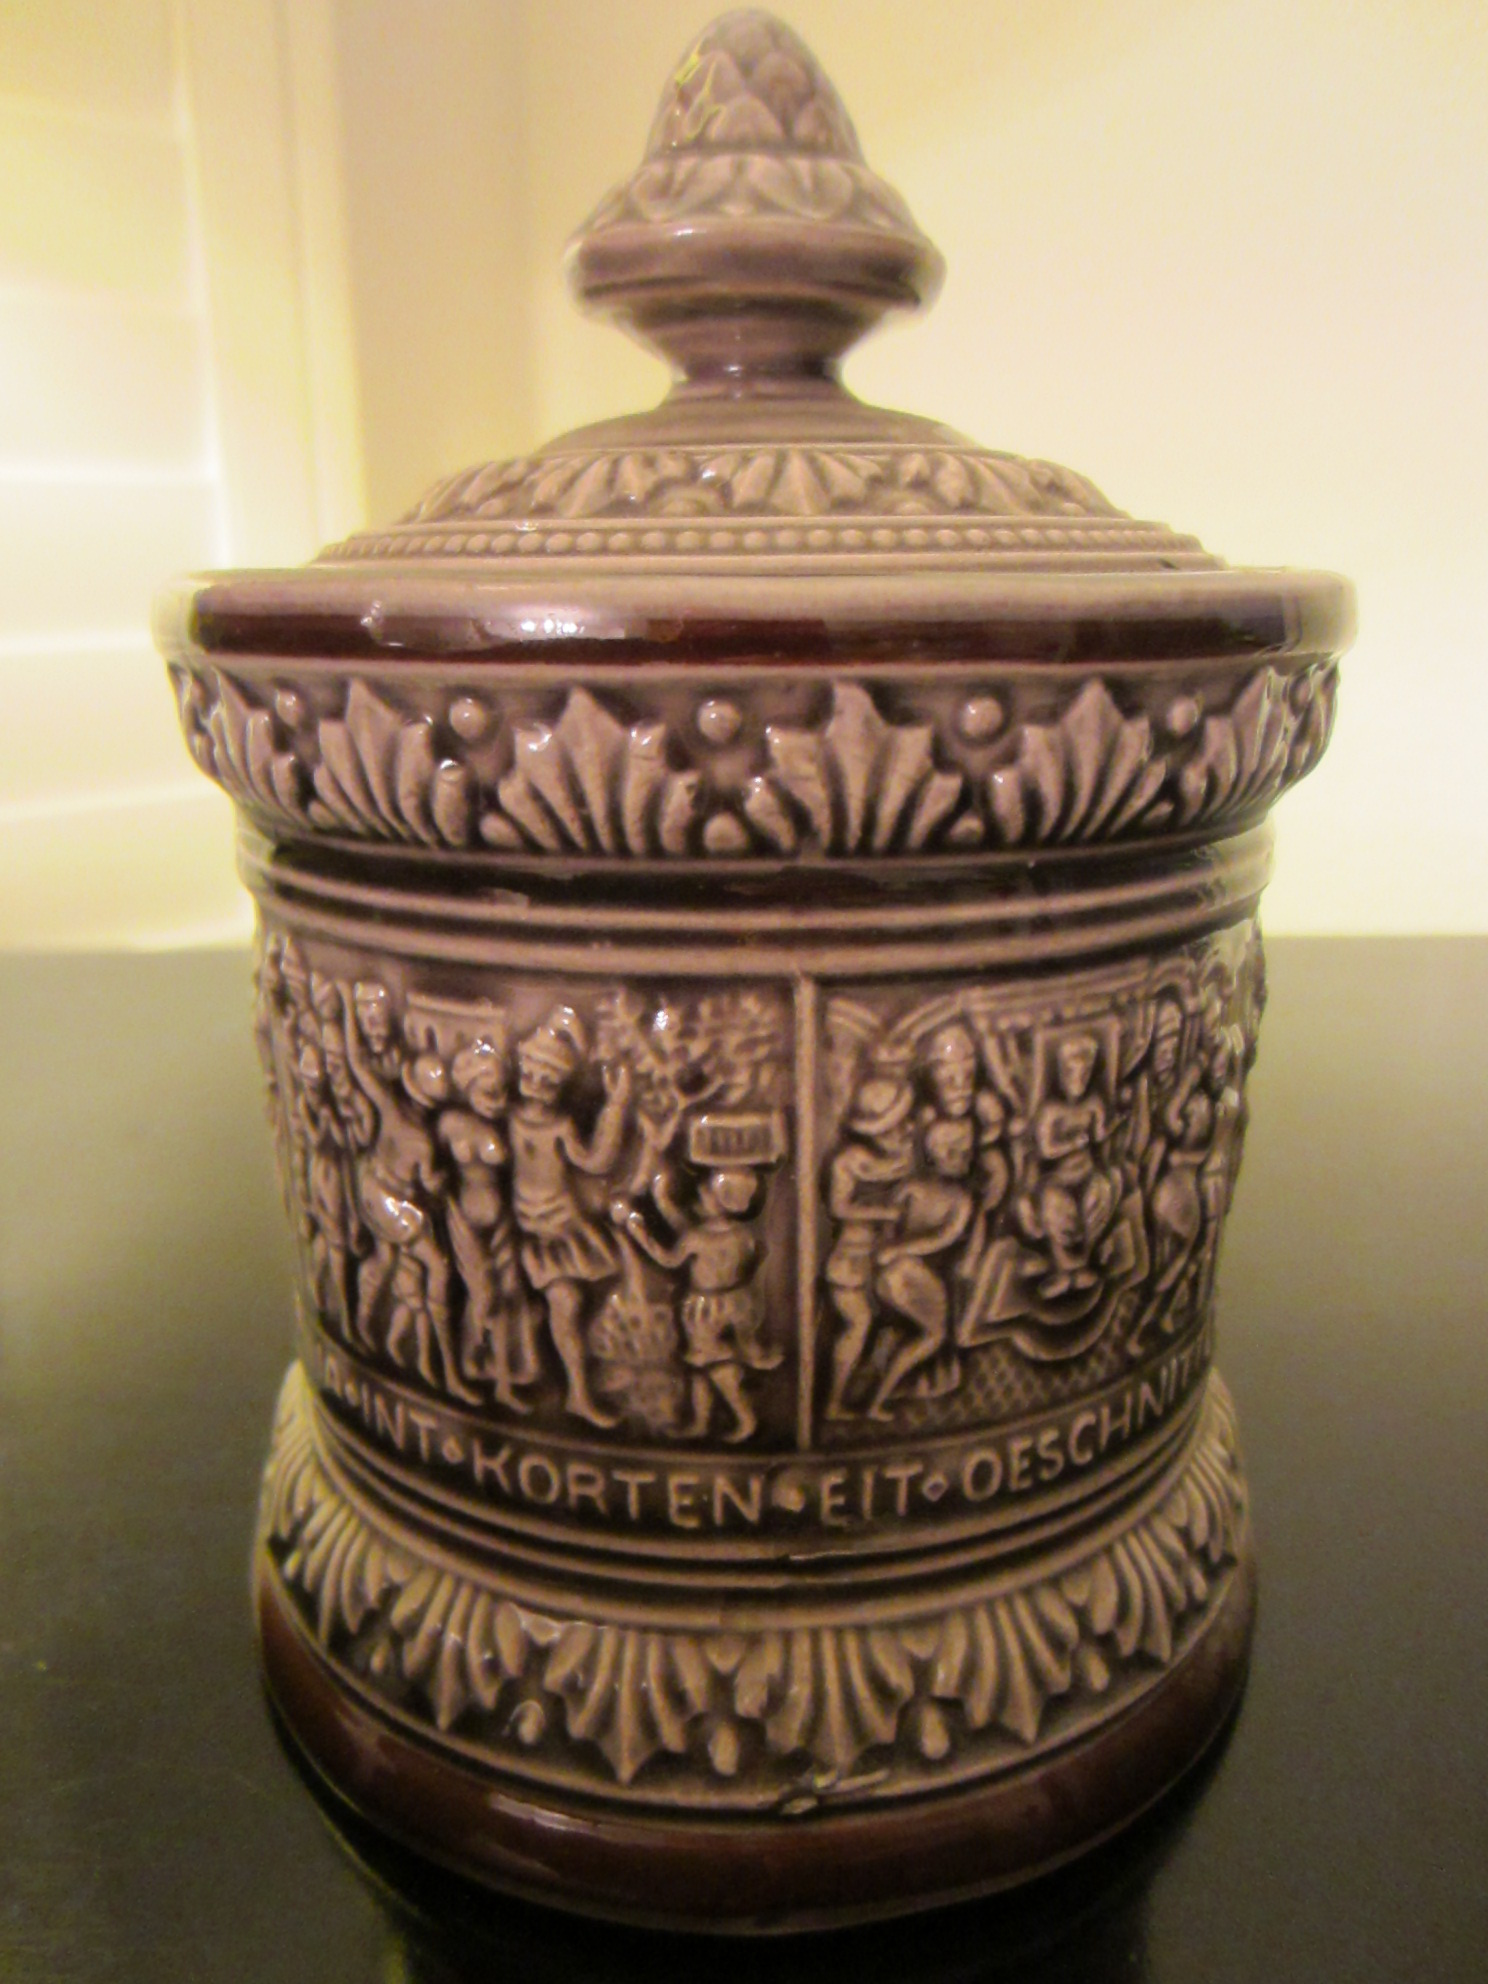 Germany Figurative Ceramic Cracker Jar For Sale | Antiques ...